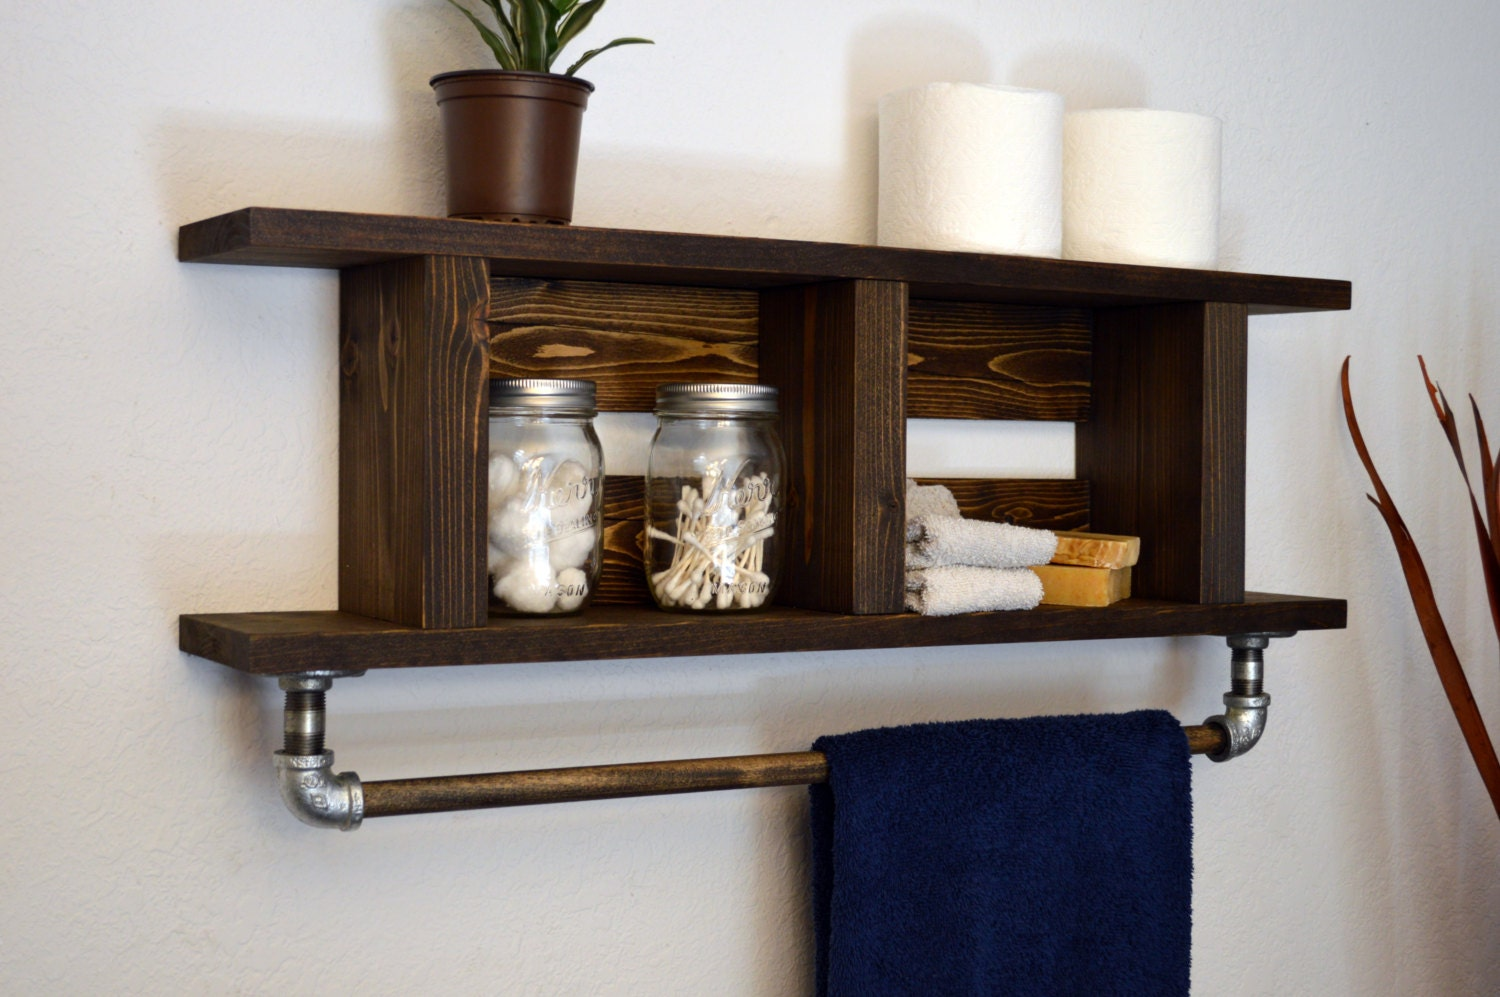 Rustic Modern Bathroom Wood Towel Bar 2 Tier By